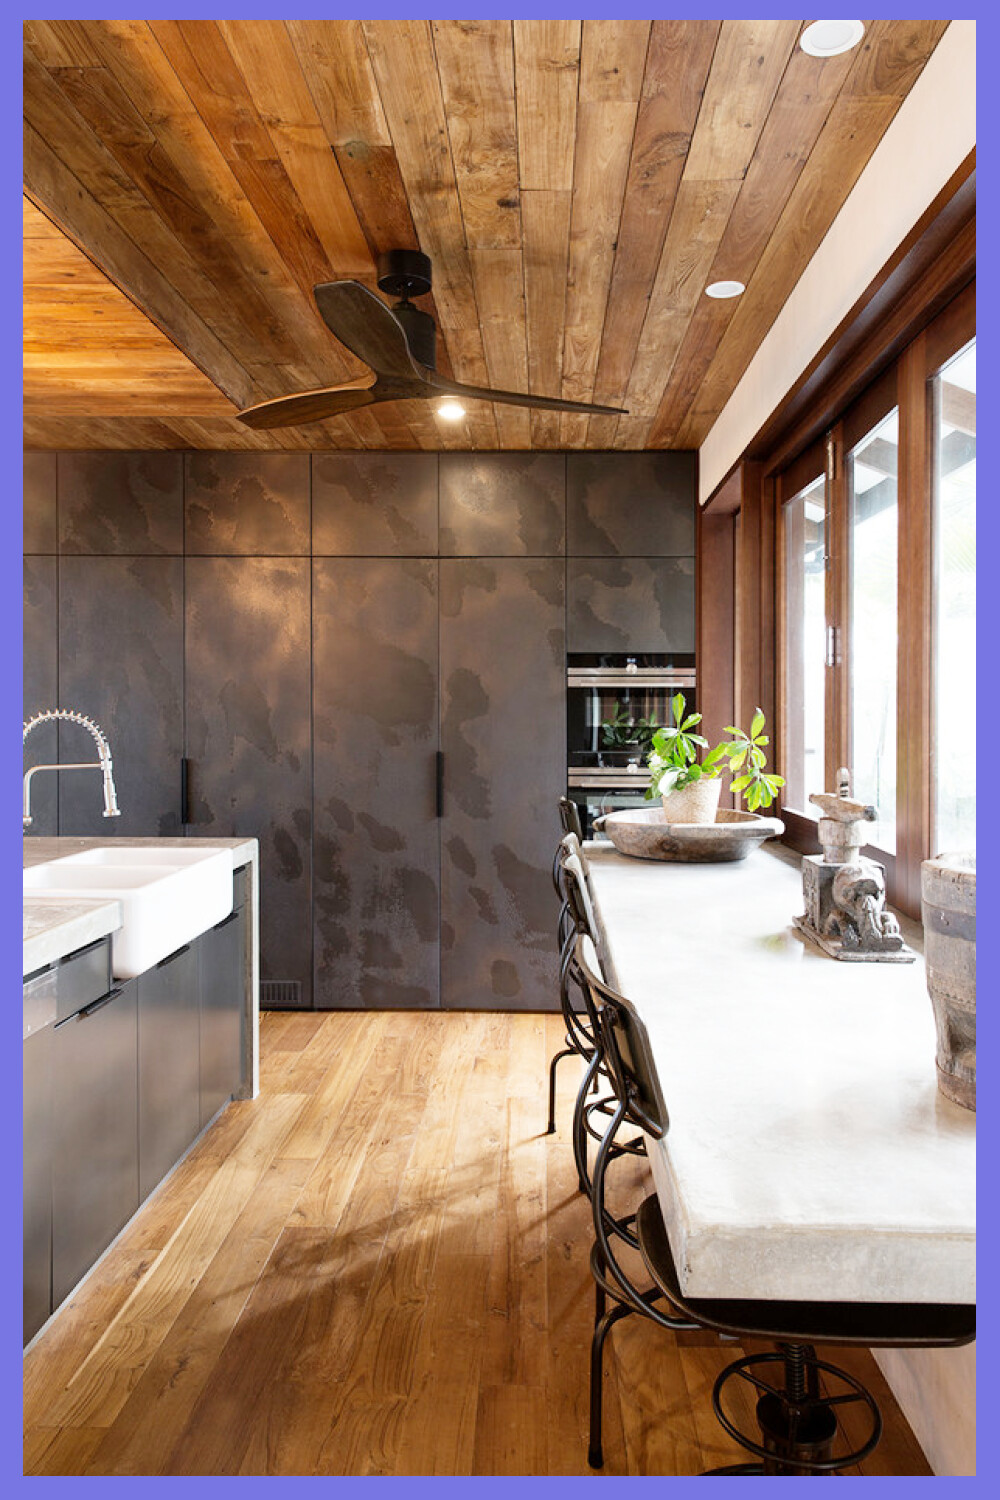 Tropical Kitchen Designs Inspiration For A Tropical Medium Tone Wood Floor And Brown Floo In 2020 Kitchen Inspiration Design Tropical Kitchen Design Tropical Kitchen